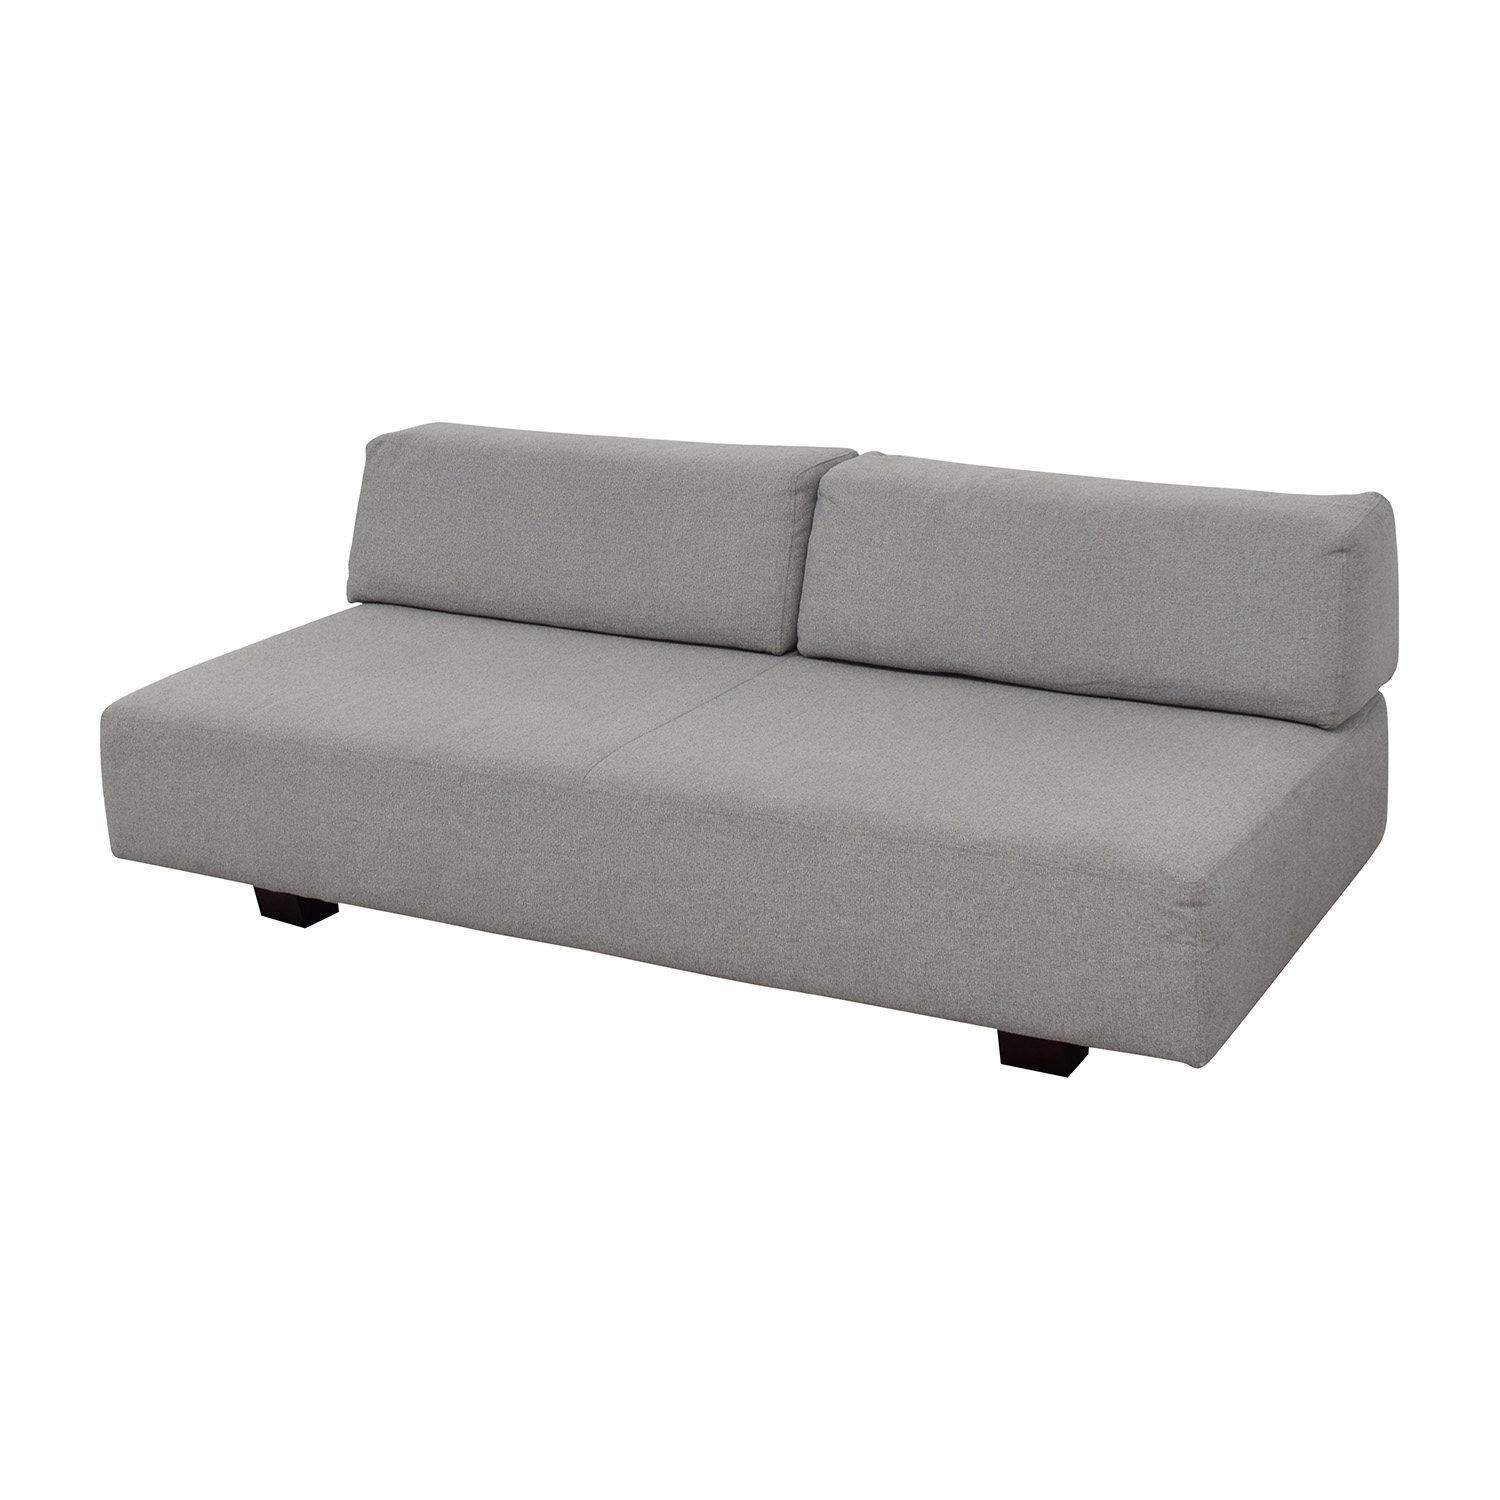 shop West Elm West Elm Tillary Modular Seating online